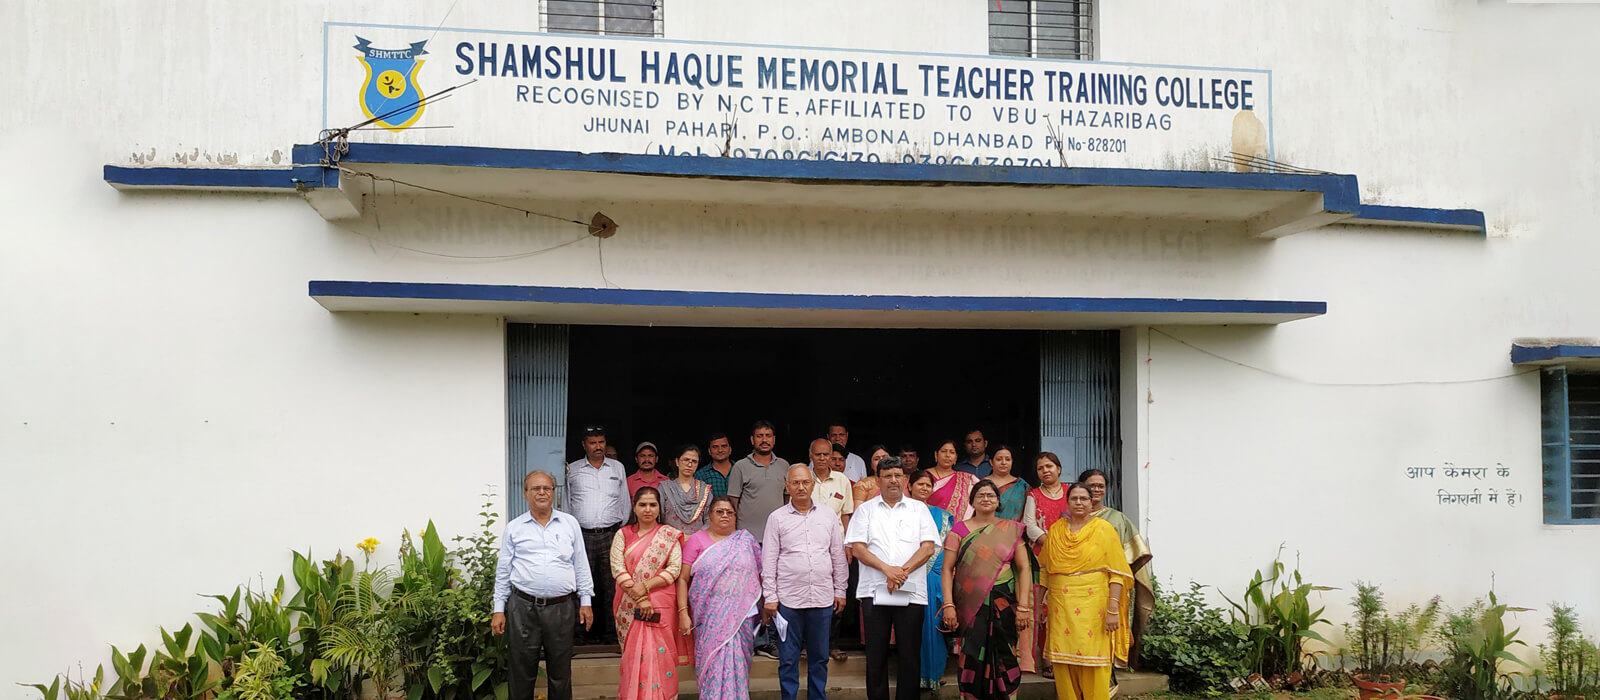 Shamshul Haque Memorial Teacher Training College